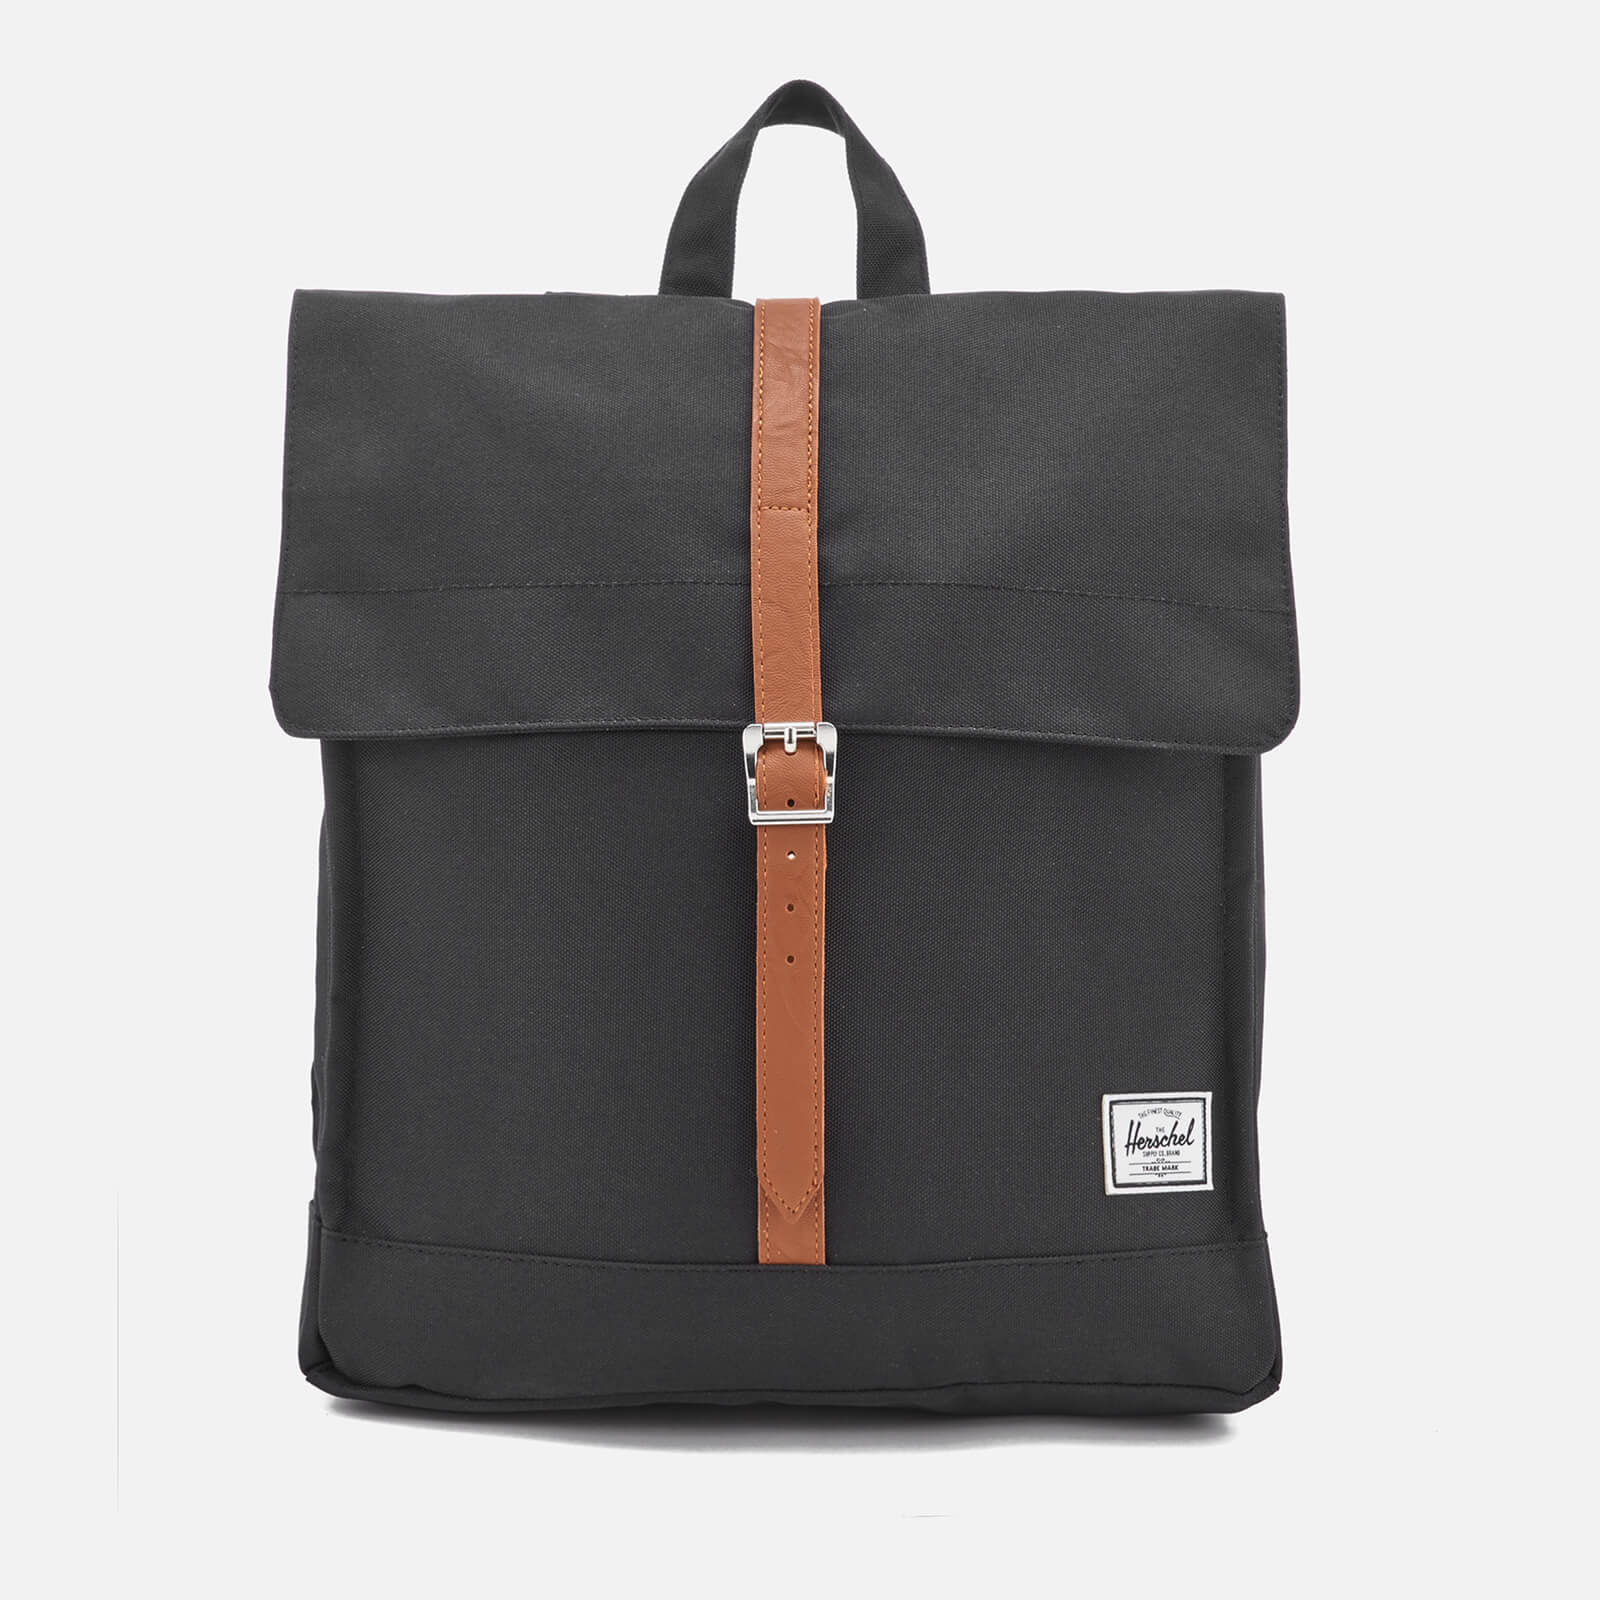 Herschel Supply Co. Men s City Mid-Volume Backpack - Black Tan - Free UK  Delivery over £50 7a006bc0db306